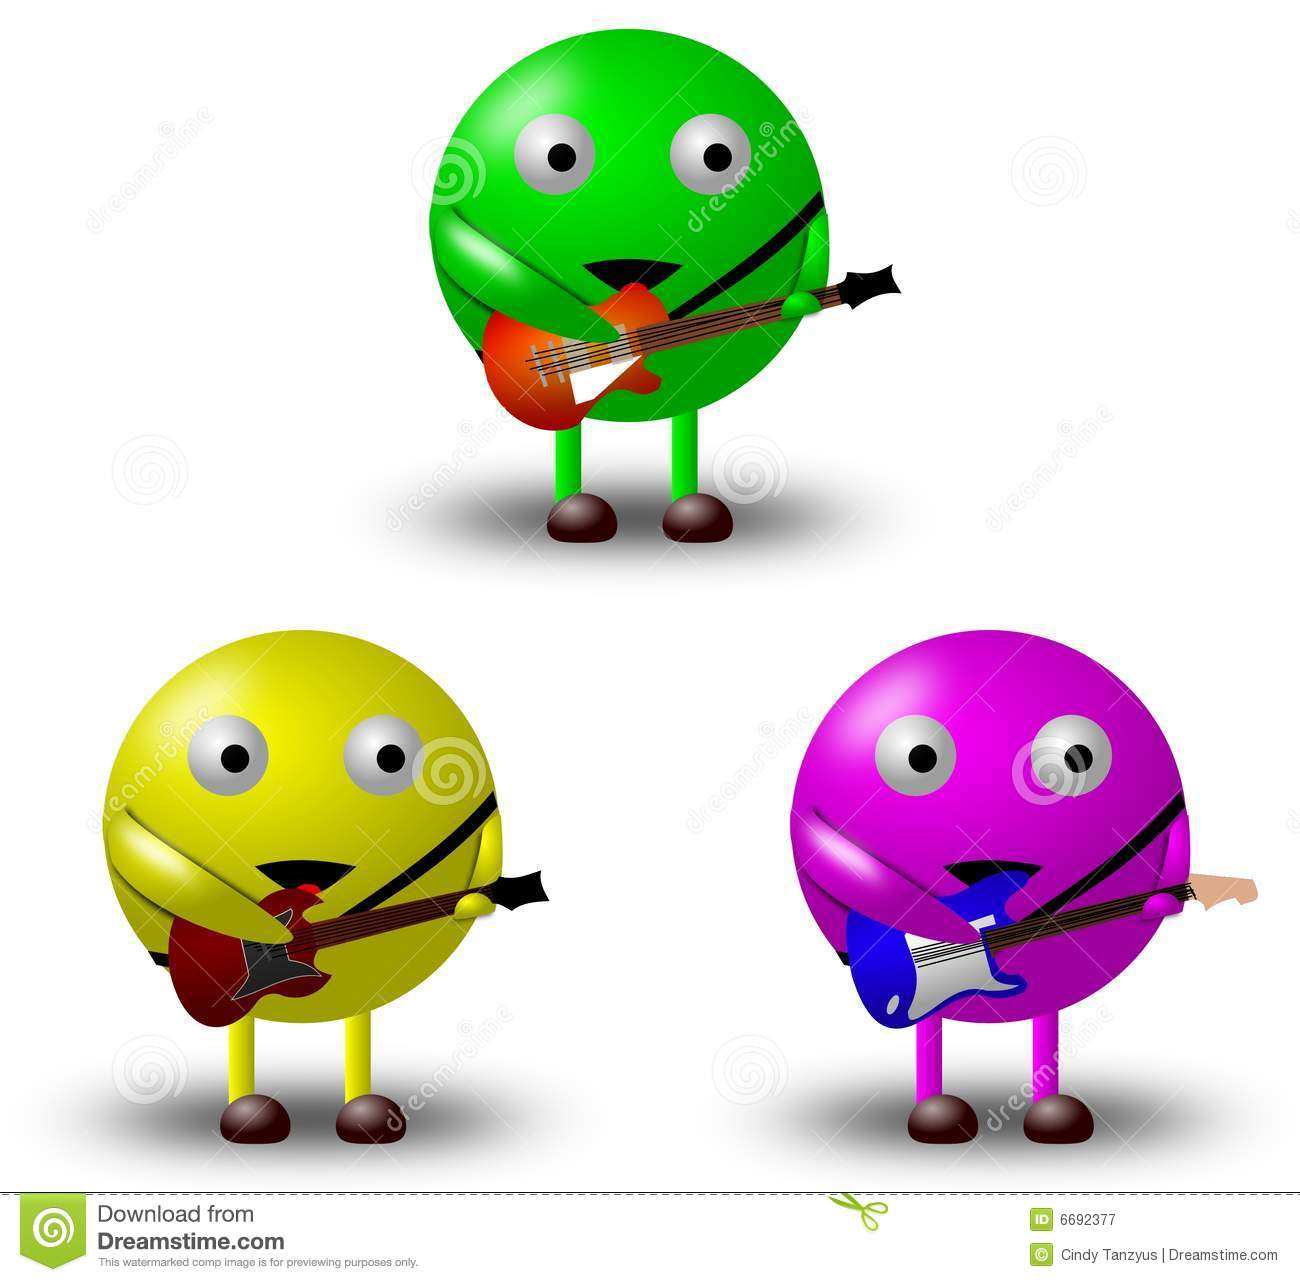 3 Cartoon Character Images : Cartoon characters with guitars royalty free stock